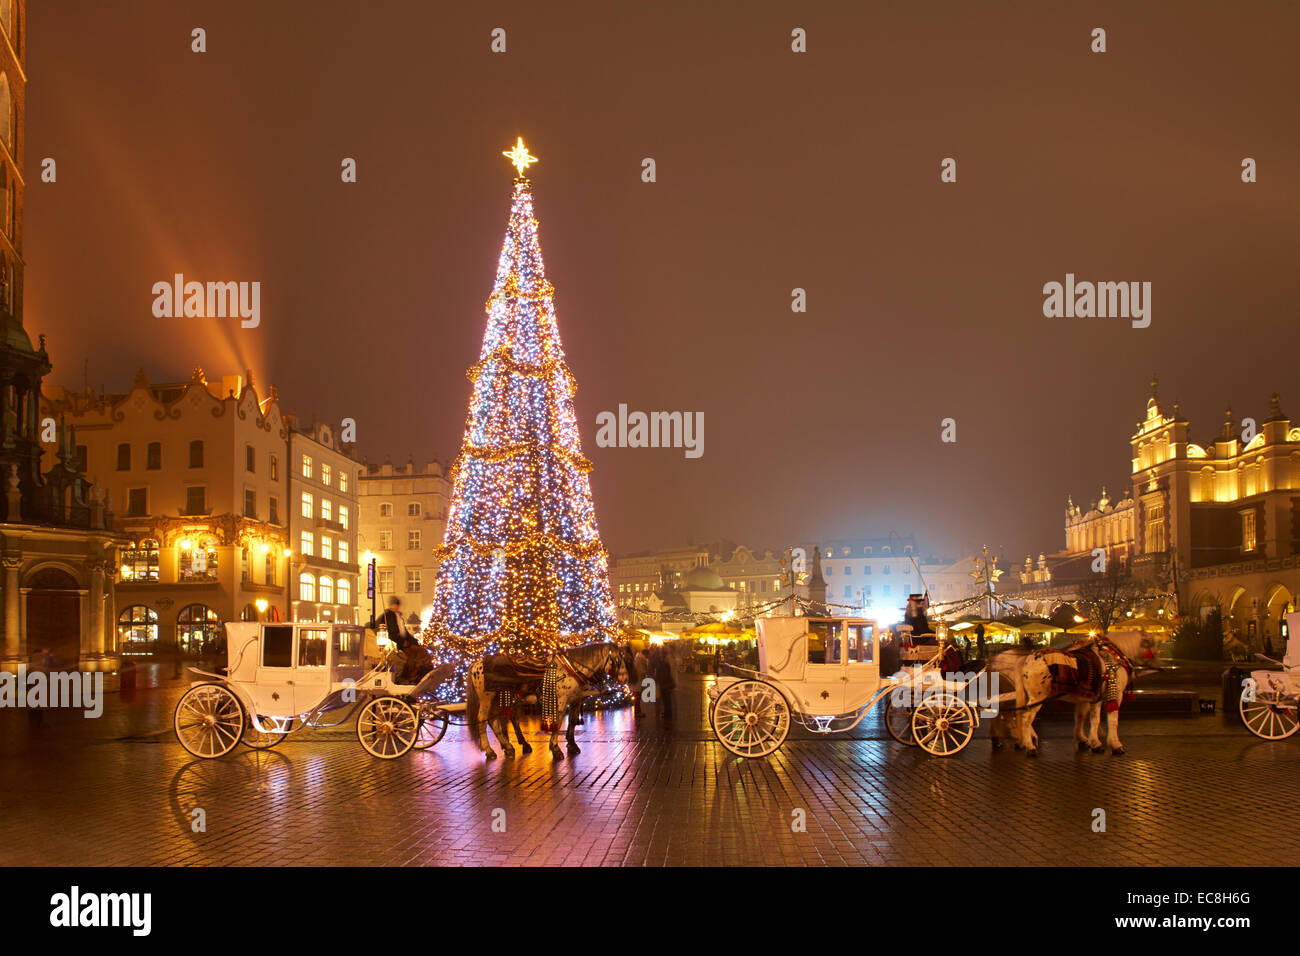 polen krakau weihnachten markt rynek glowny twilight stockfoto bild 76406472 alamy. Black Bedroom Furniture Sets. Home Design Ideas